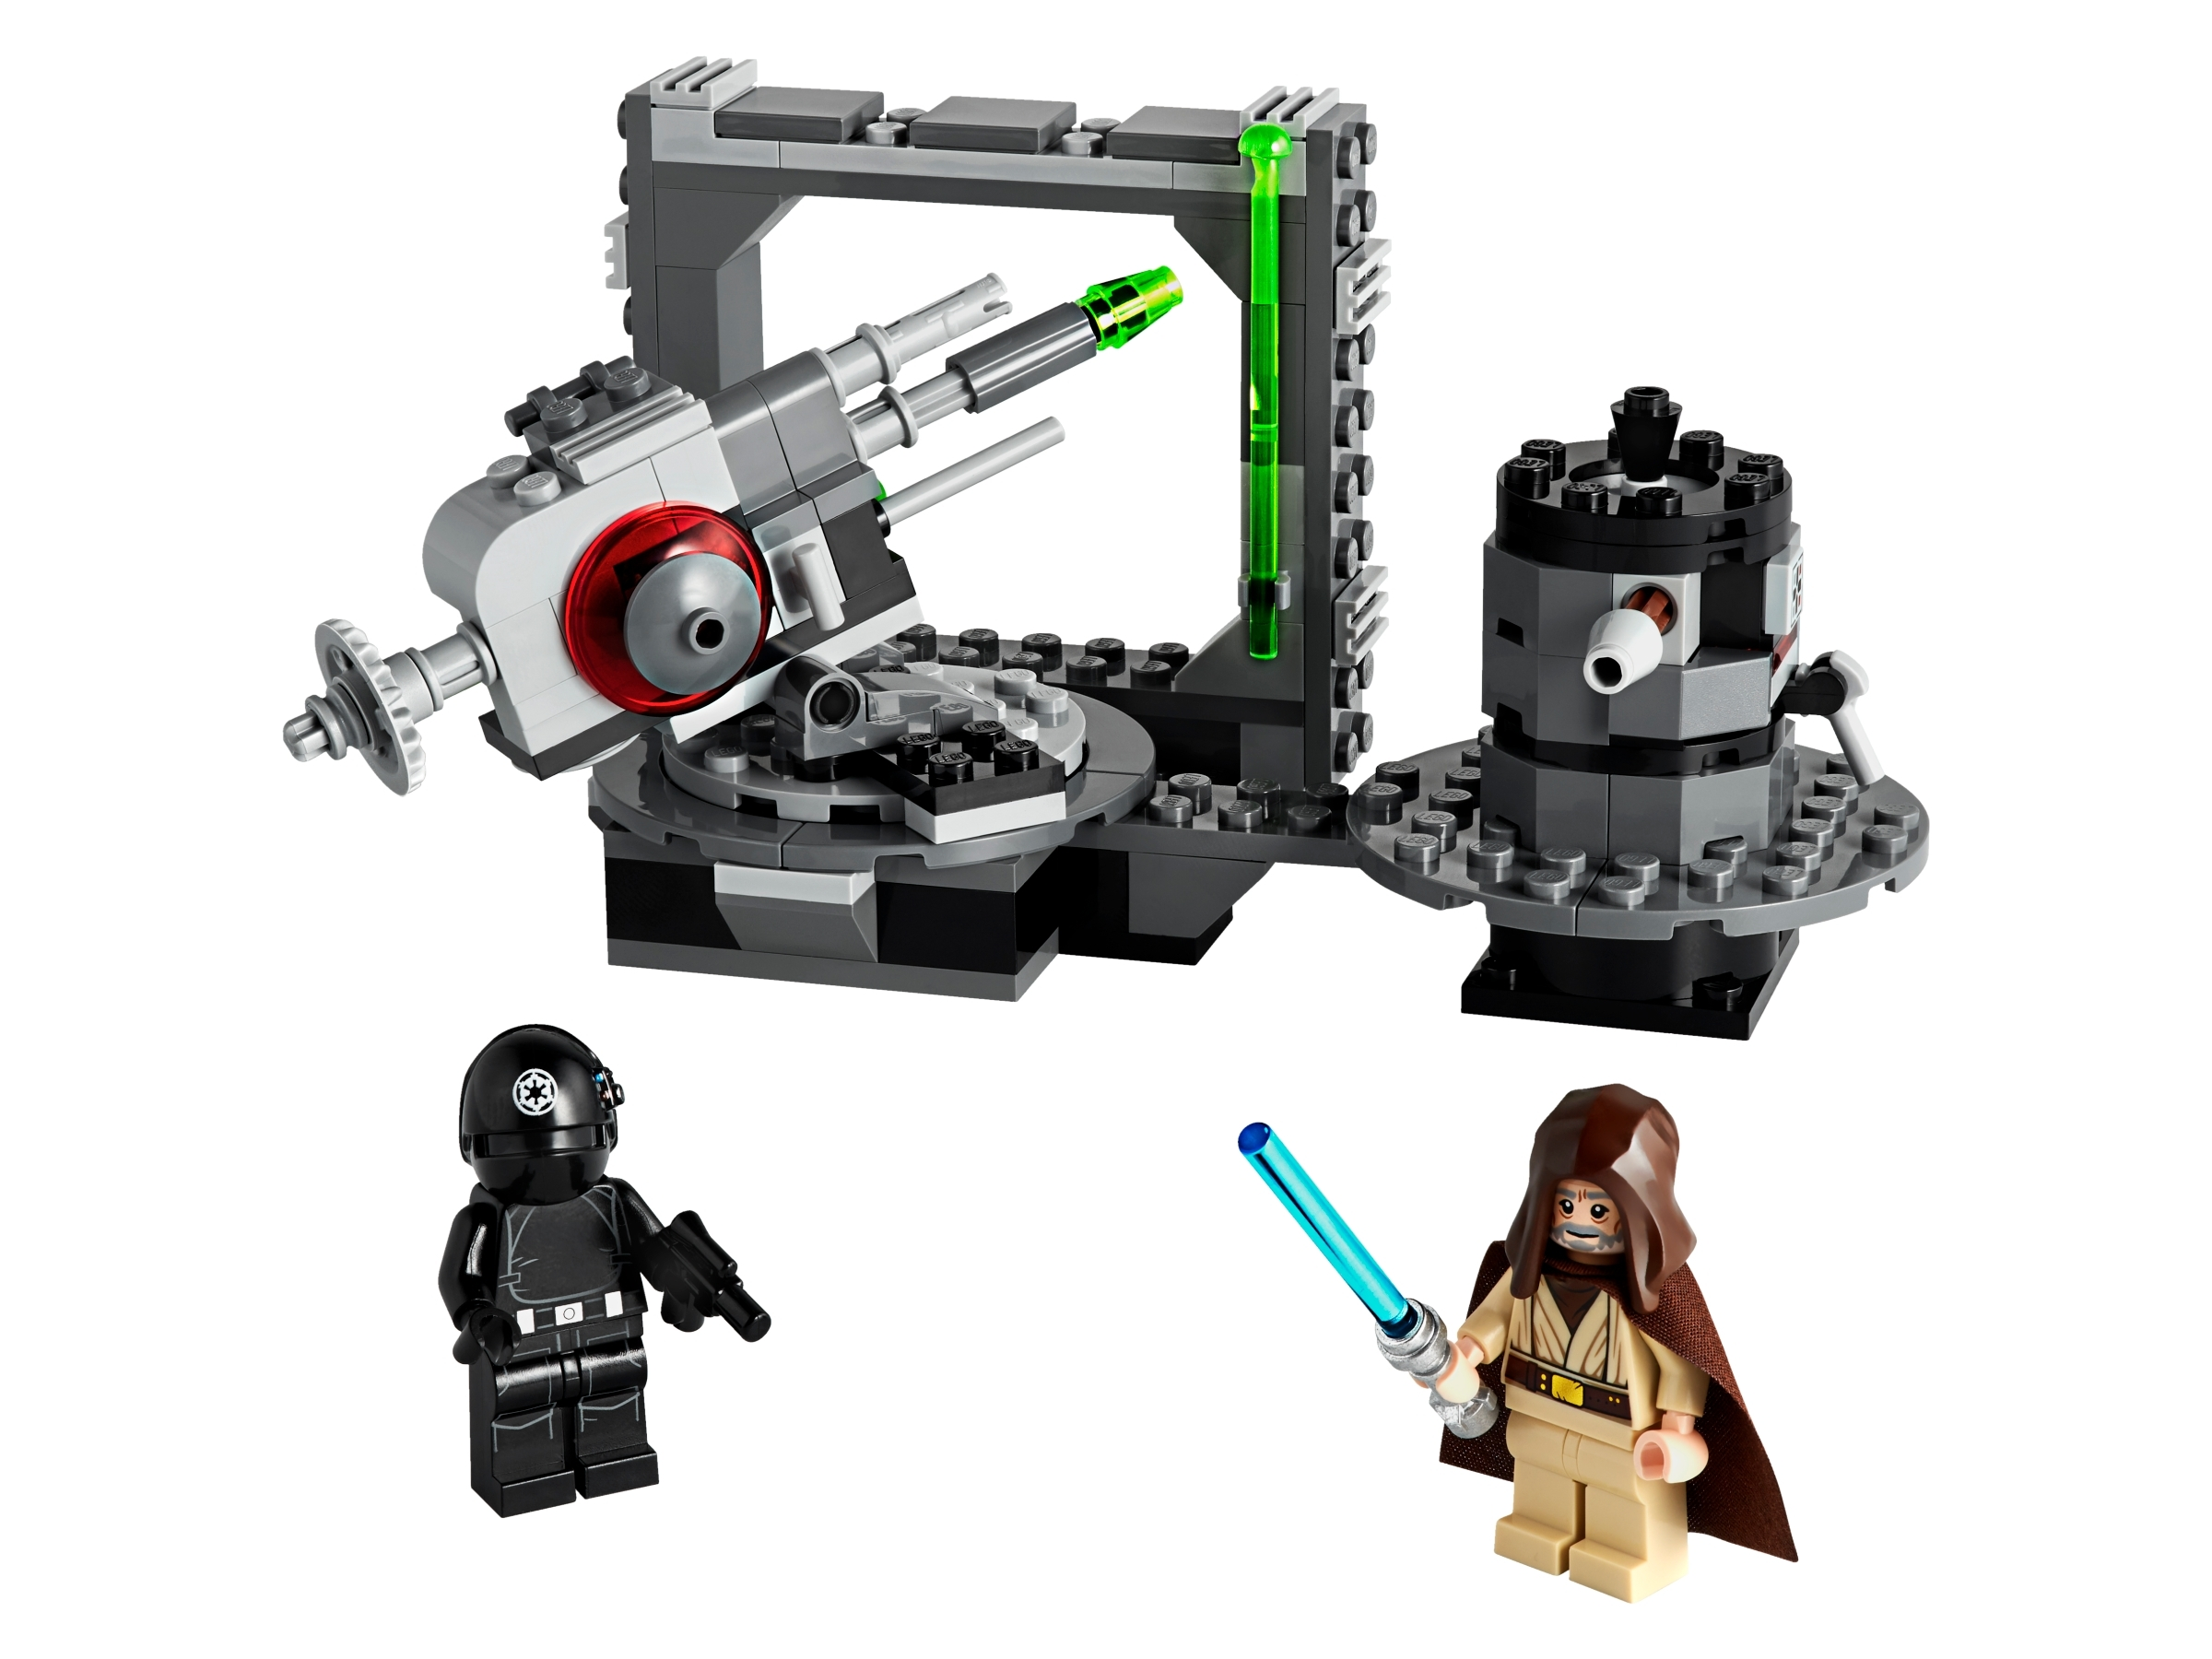 Lego Star Wars The Rise Of Skywalker Sets Make Awesome Gifts Official Lego Shop Us